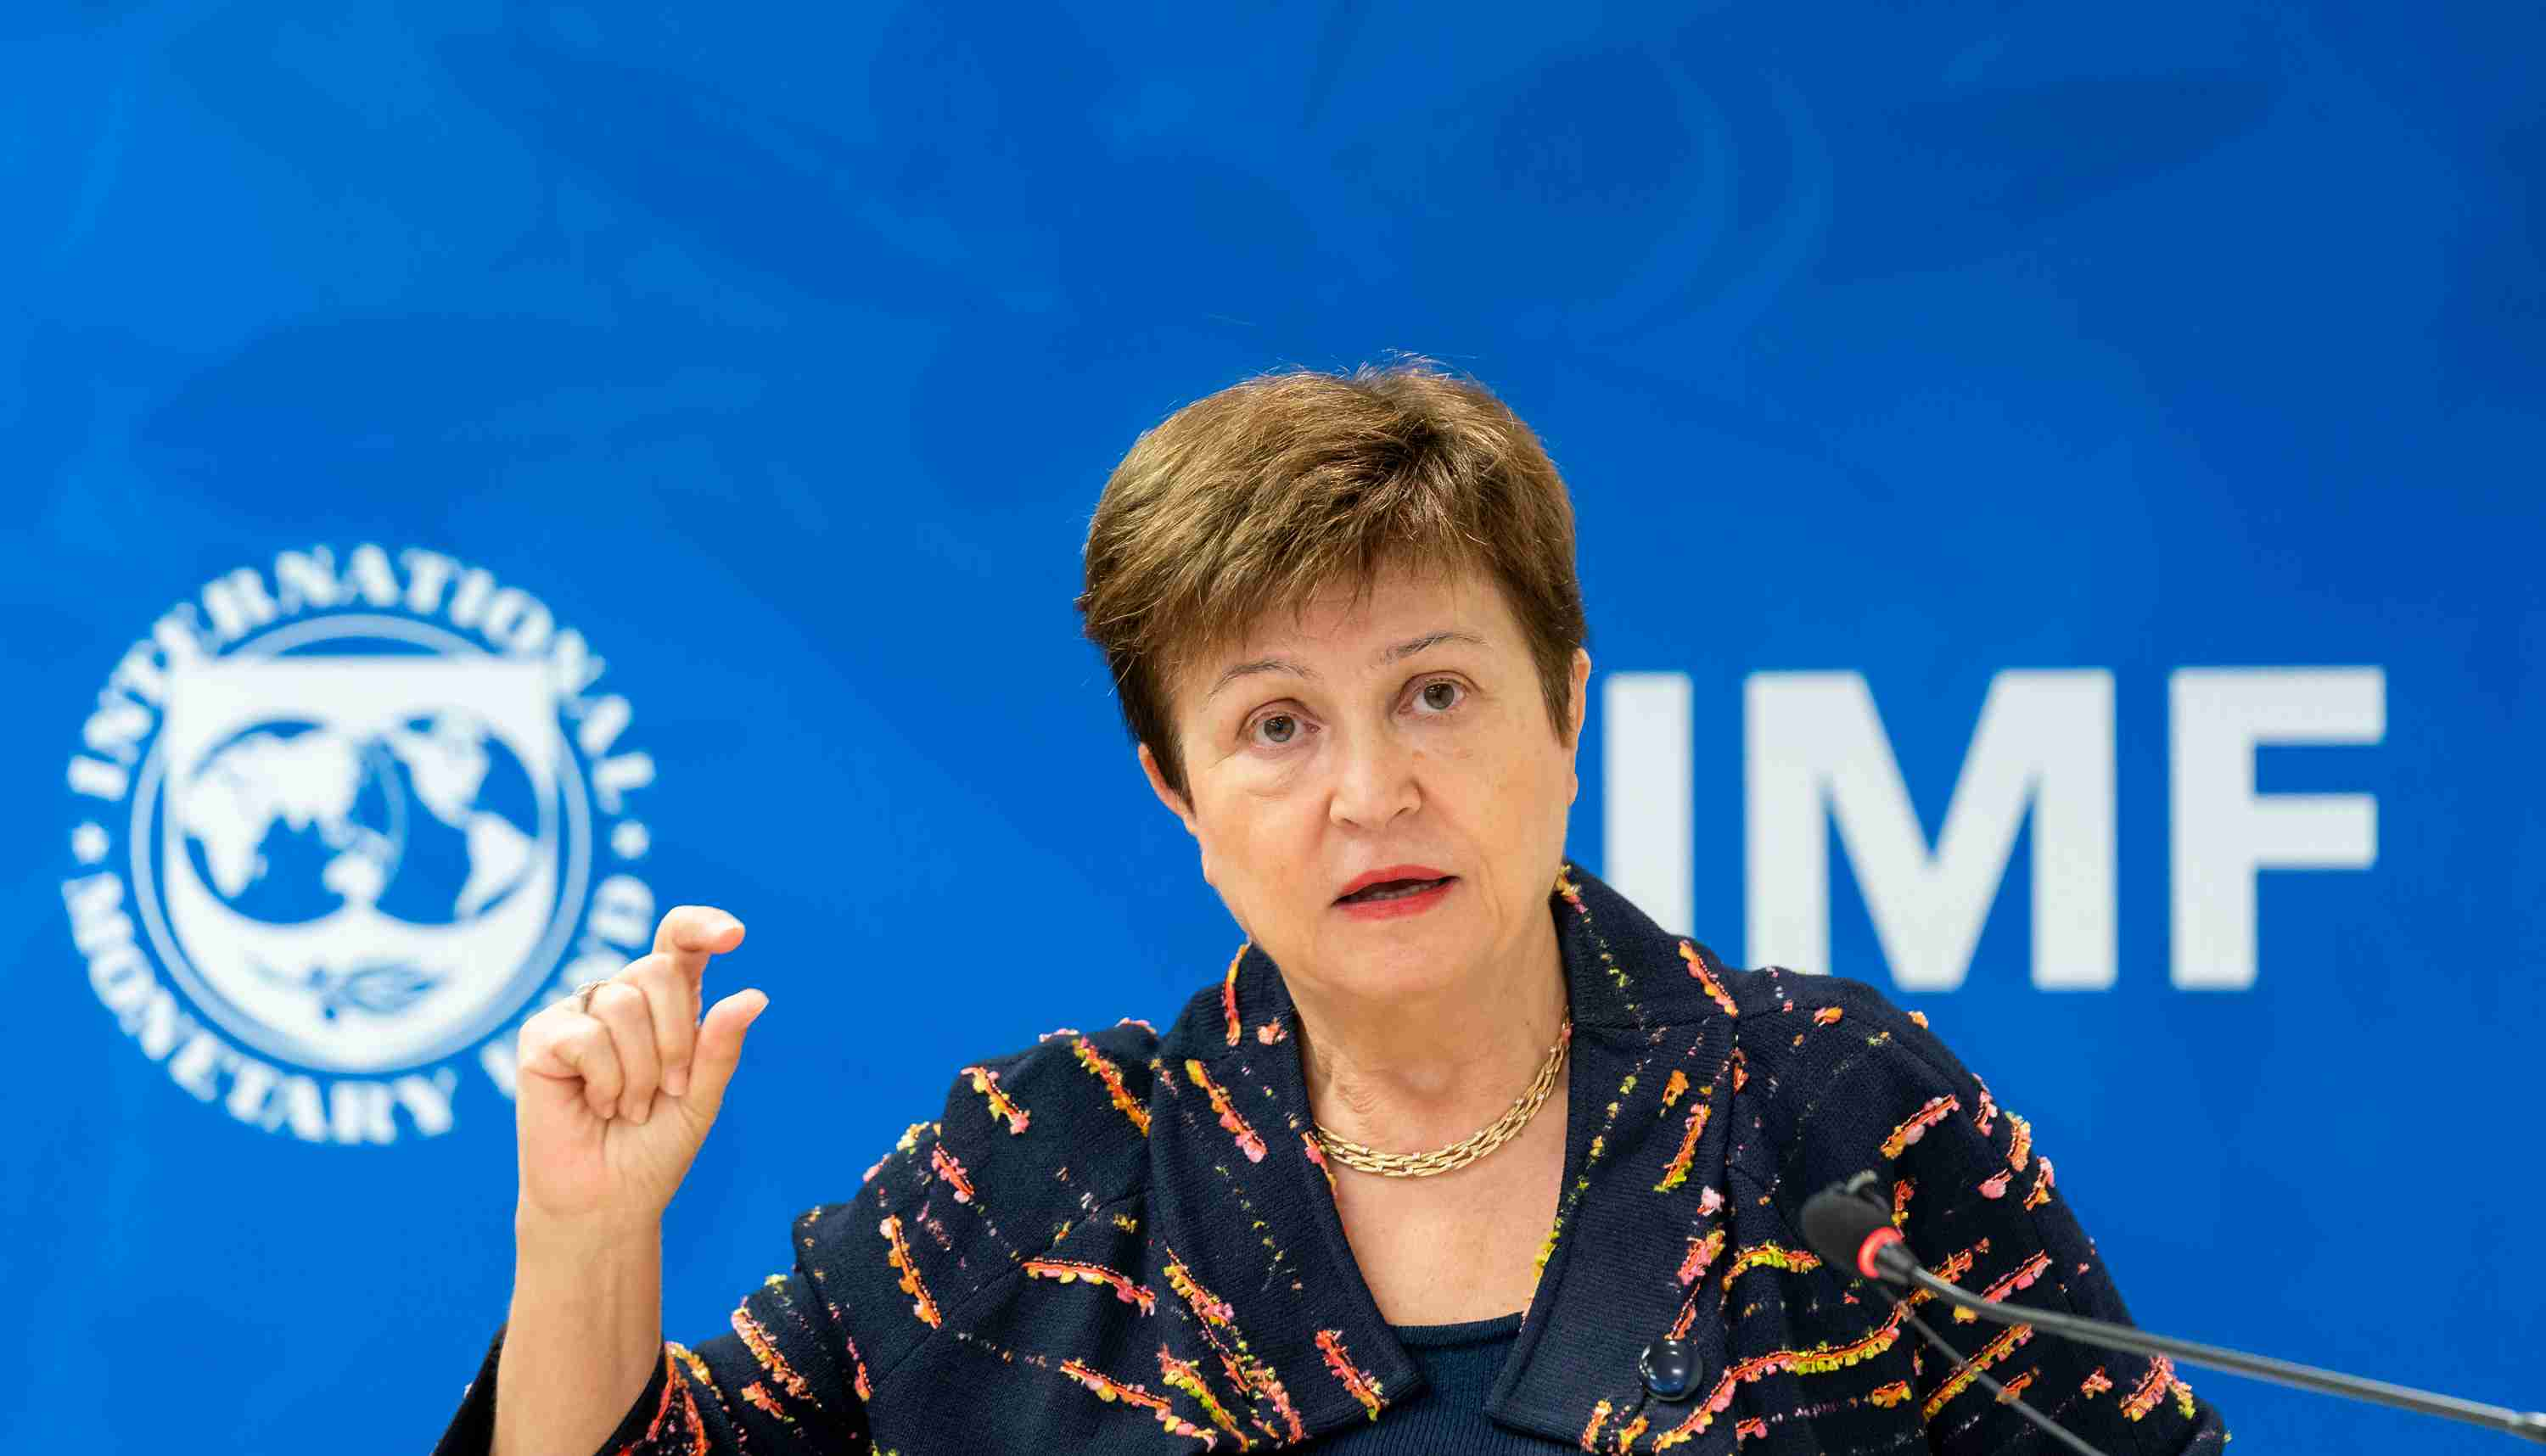 Washington, United States.- IMF Managing Director Kristalina Georgieva, participates in the 2020 Annual Meetings of the International Monetary Fund (IMF) in Washington DC, United States on October 9, 2020. African countries will need 1.2 trillion dollars until 2023 to repair the economic damage caused by the coronavirus pandemic, Georgieva said this Friday (9), while the commitments of official lenders and international institutions cover less than a quarter of the projected need.